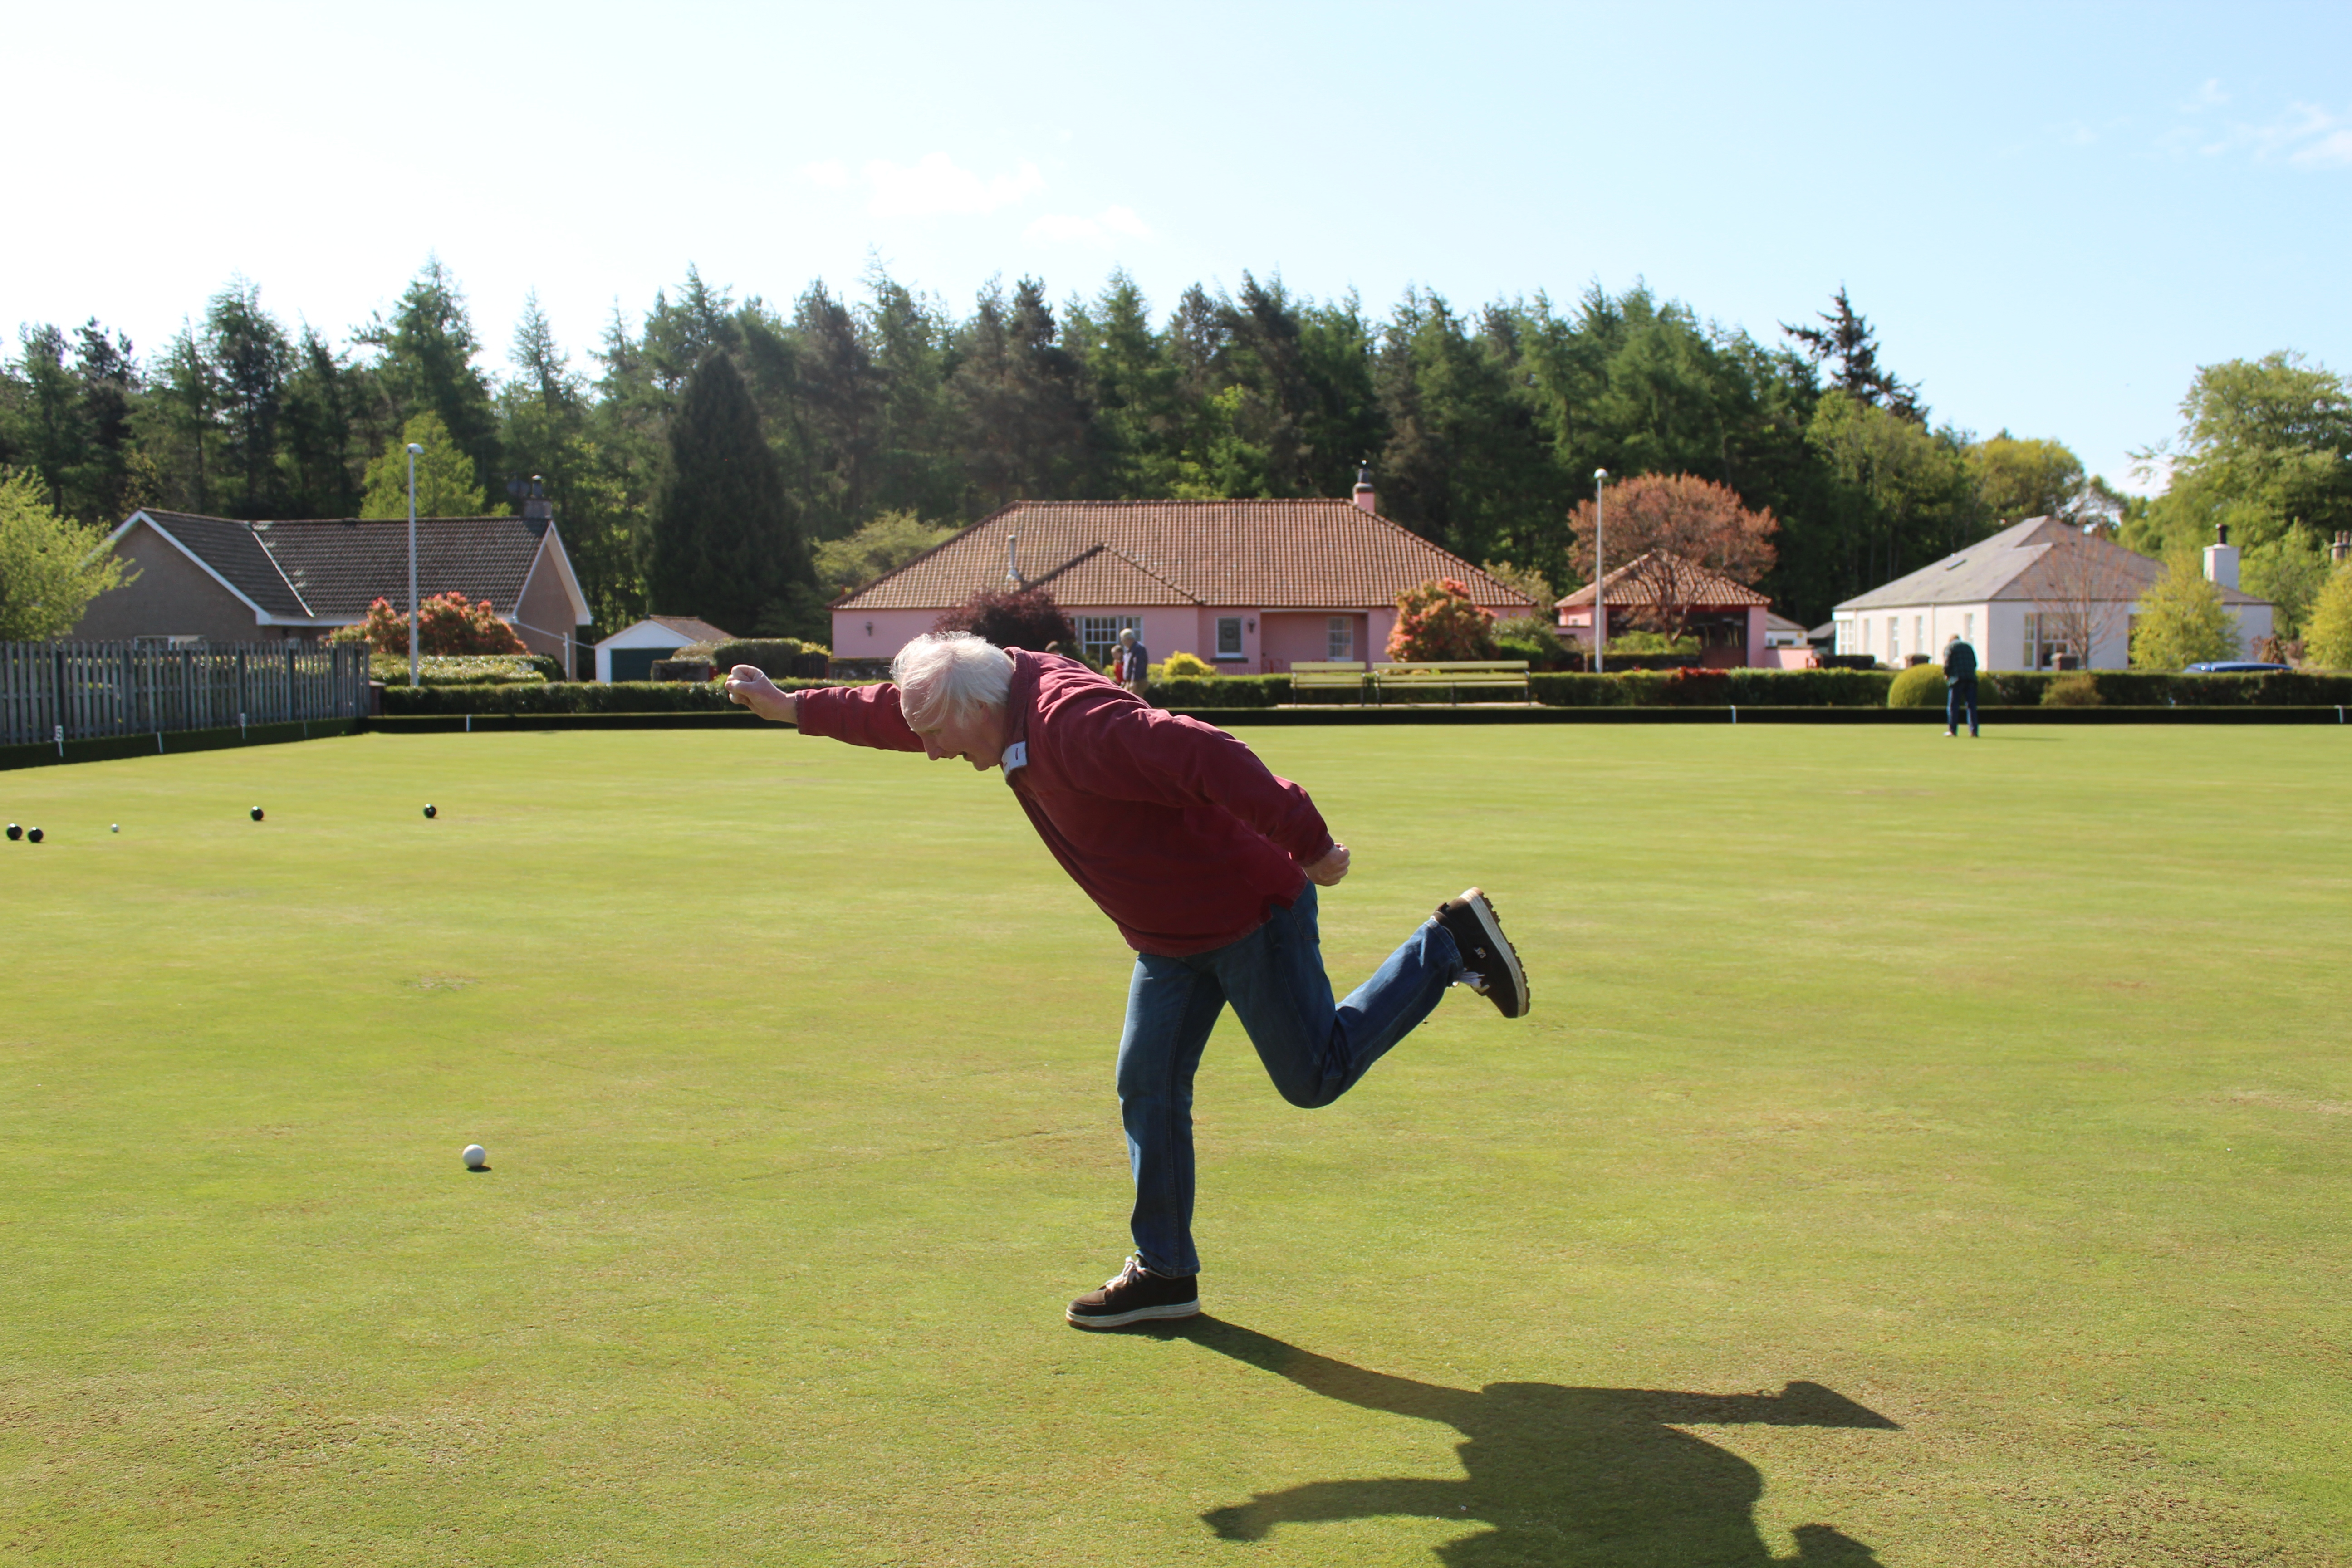 An older man enthusiastically throws a ball on a picturesque bowling green.